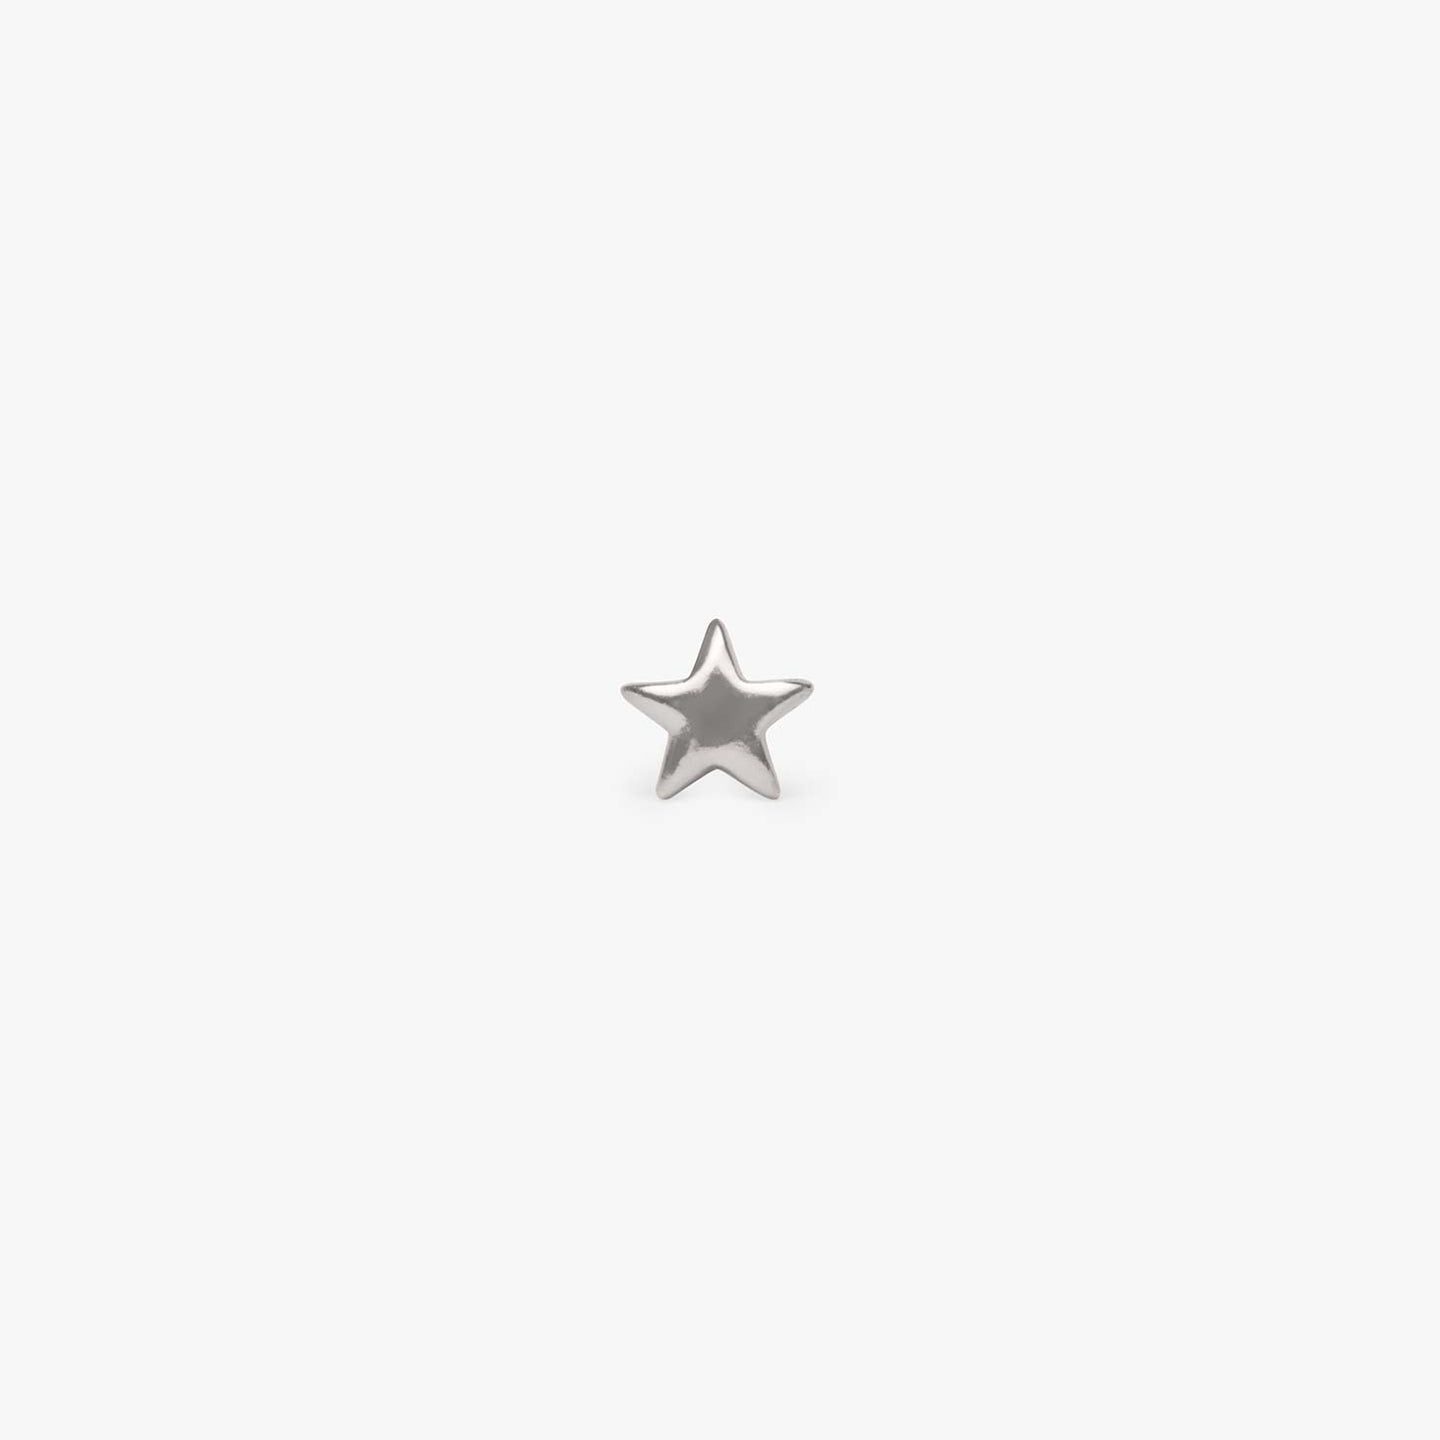 Small plain star stud in silver. color:silver